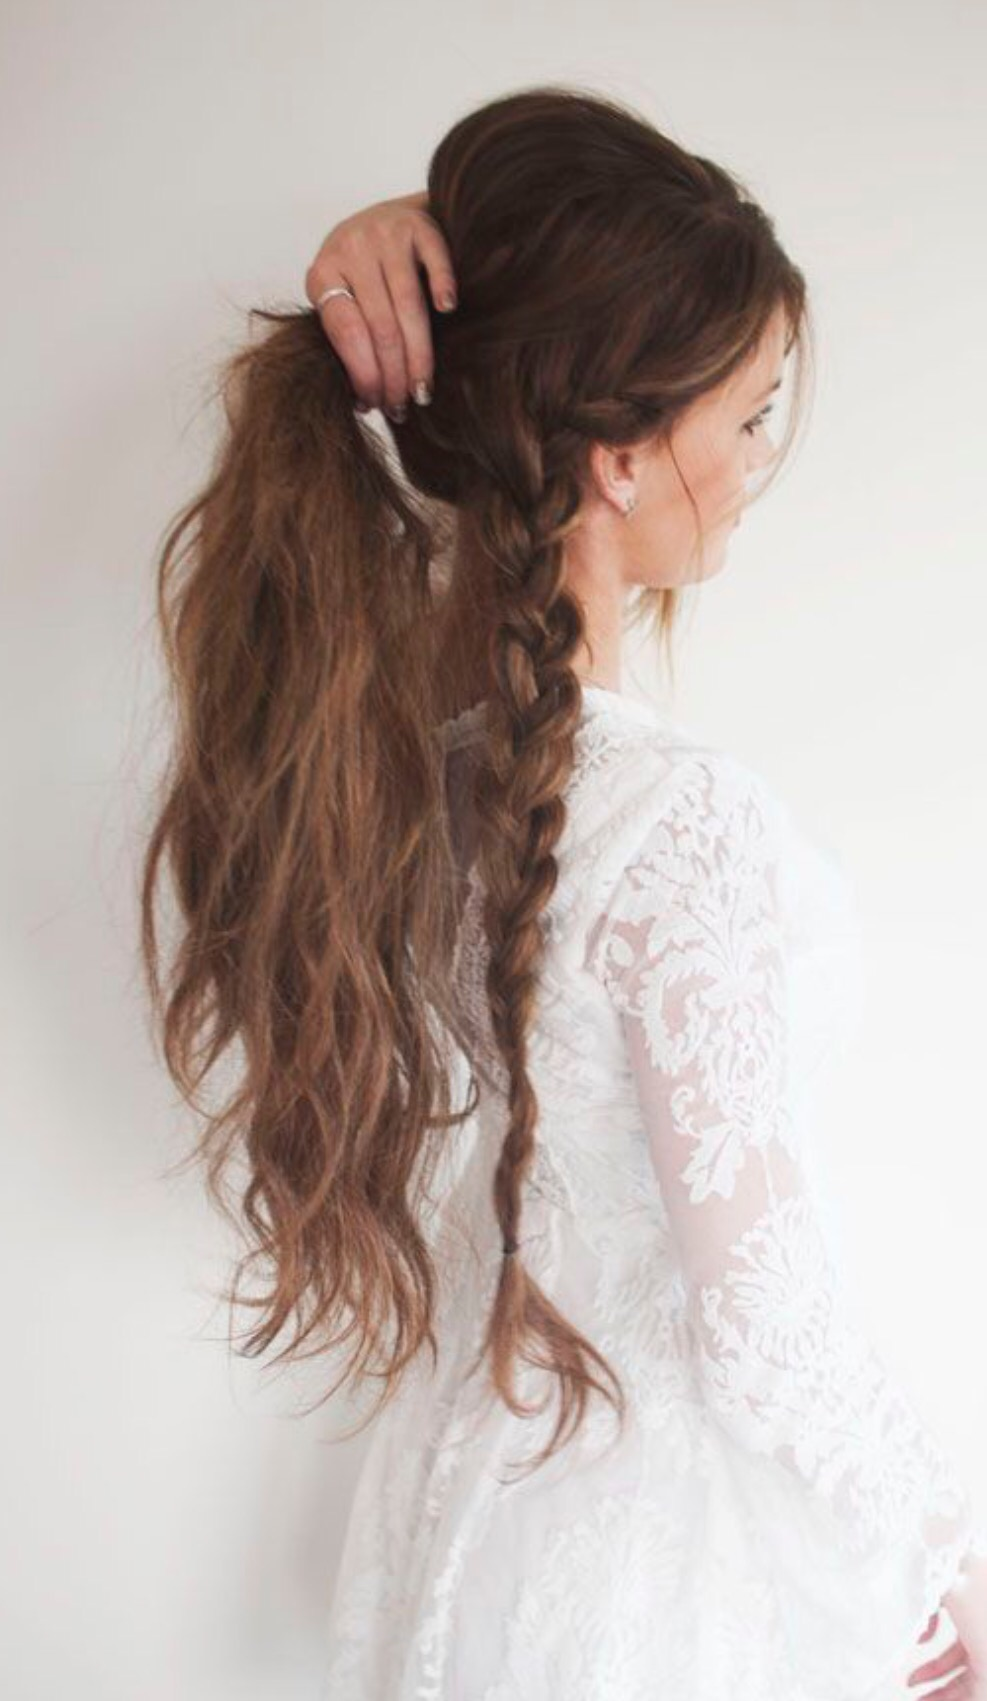 10 Hairstyles To Try This Summer Fashion And Beauty Book